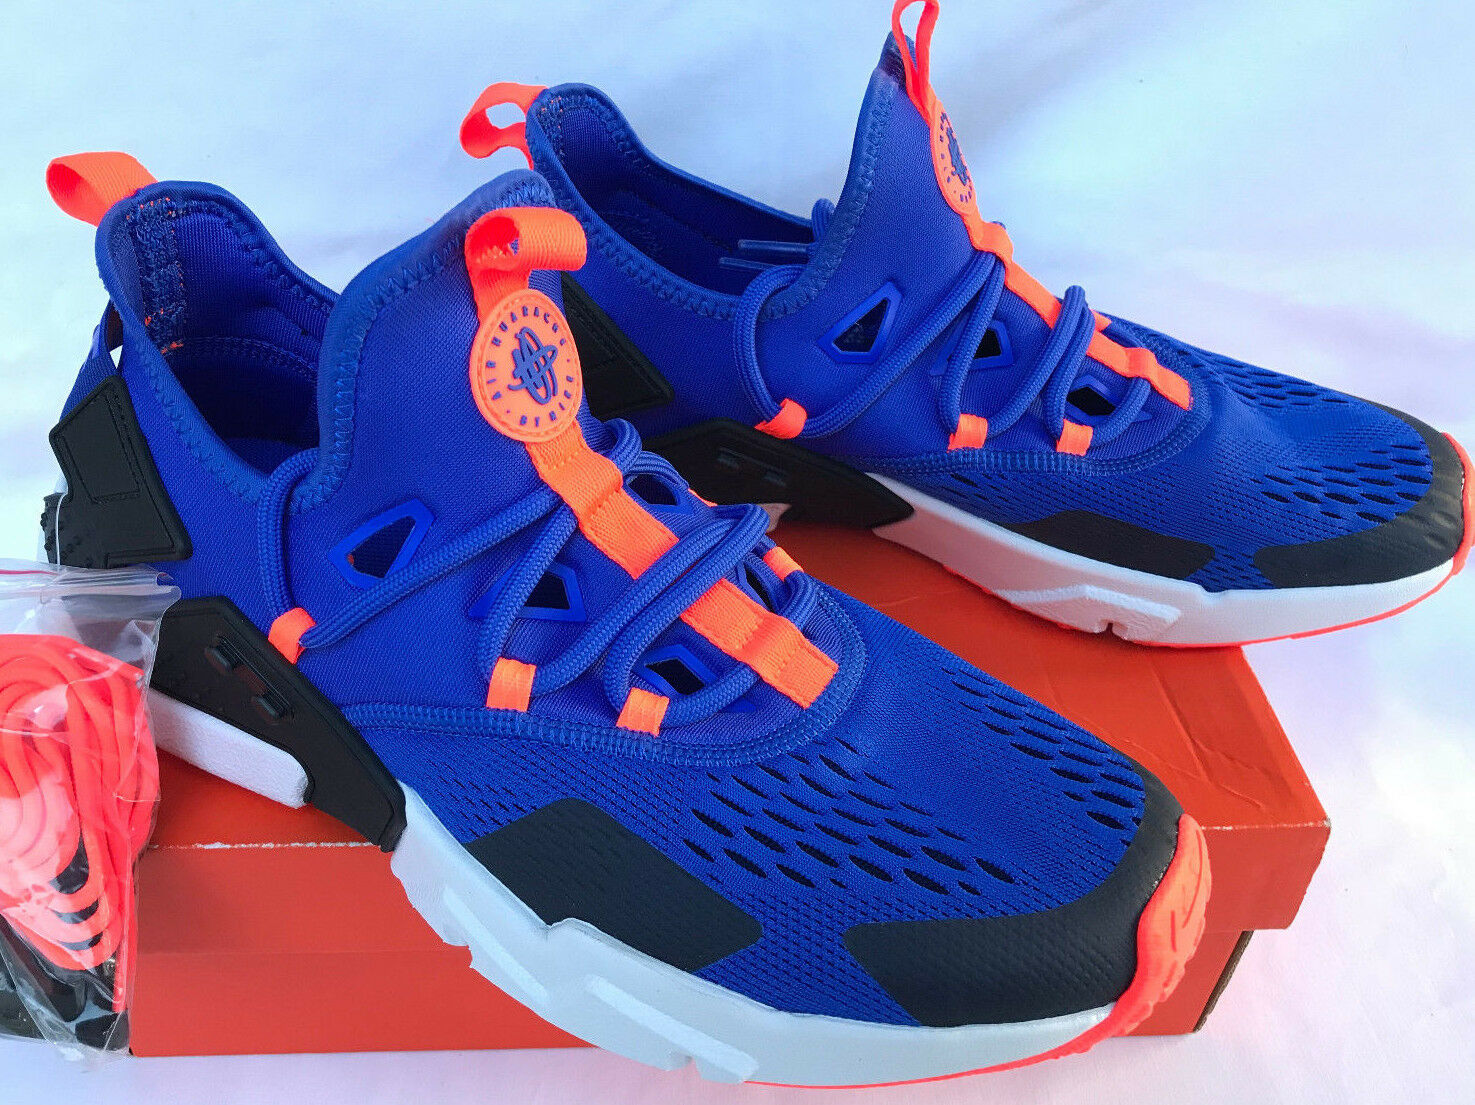 Nike Air Huarache Drift Breathe AO1133-400 bluee Marathon Running shoes Men's 9.5